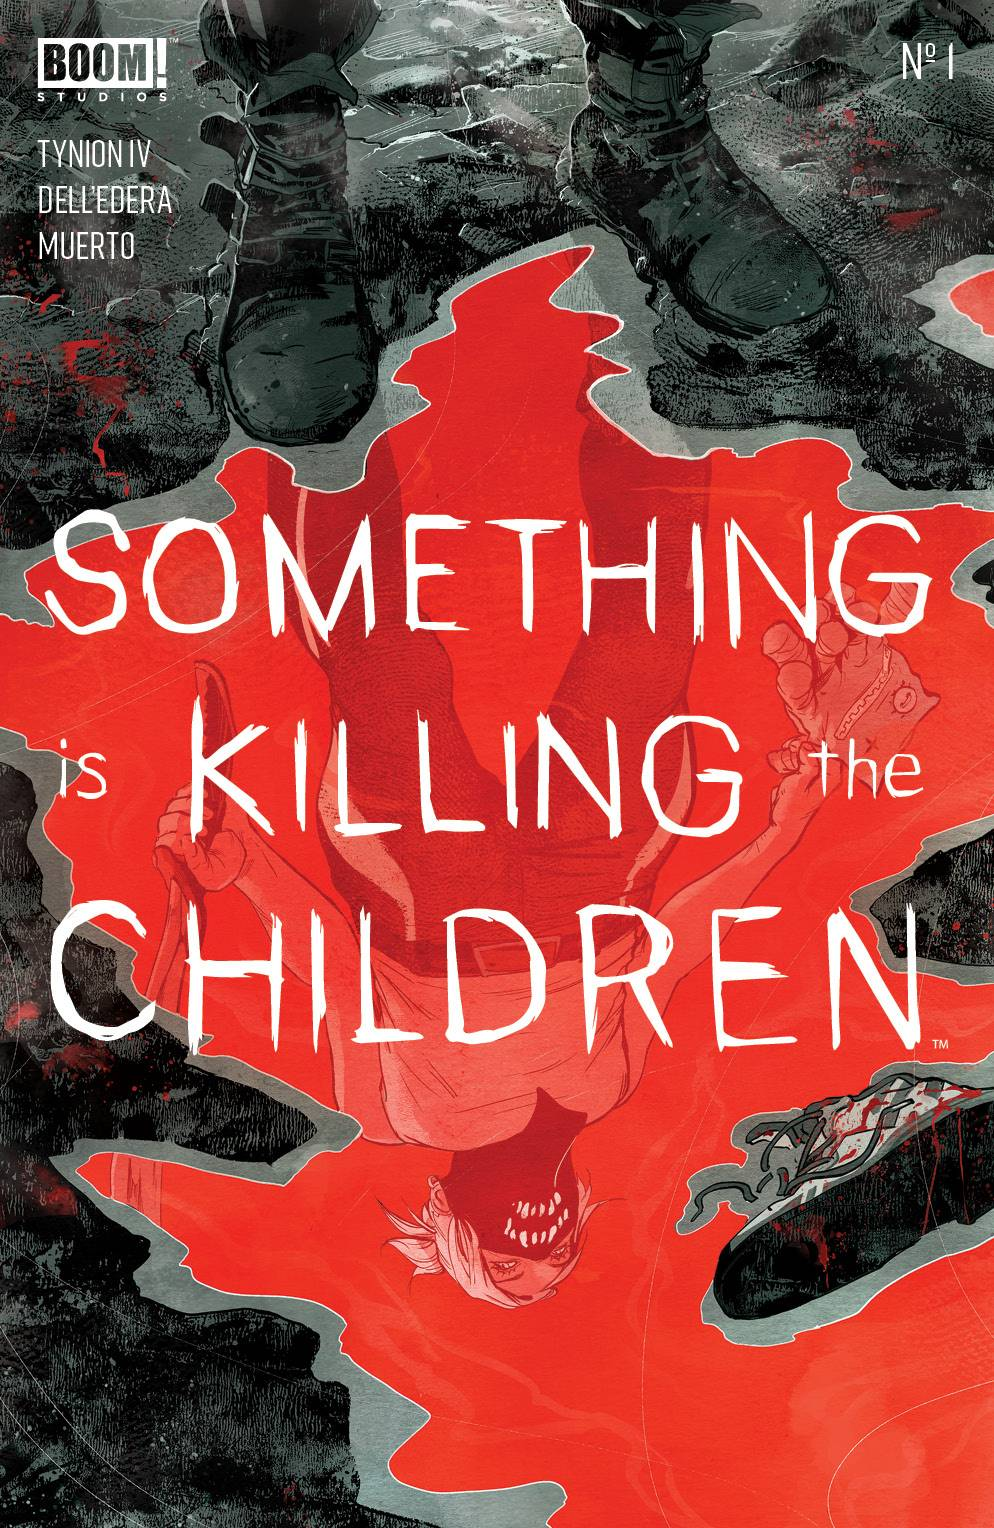 (USE JUL198621) SOMETHING IS KILLING CHILDREN #1 (3RD PTG)